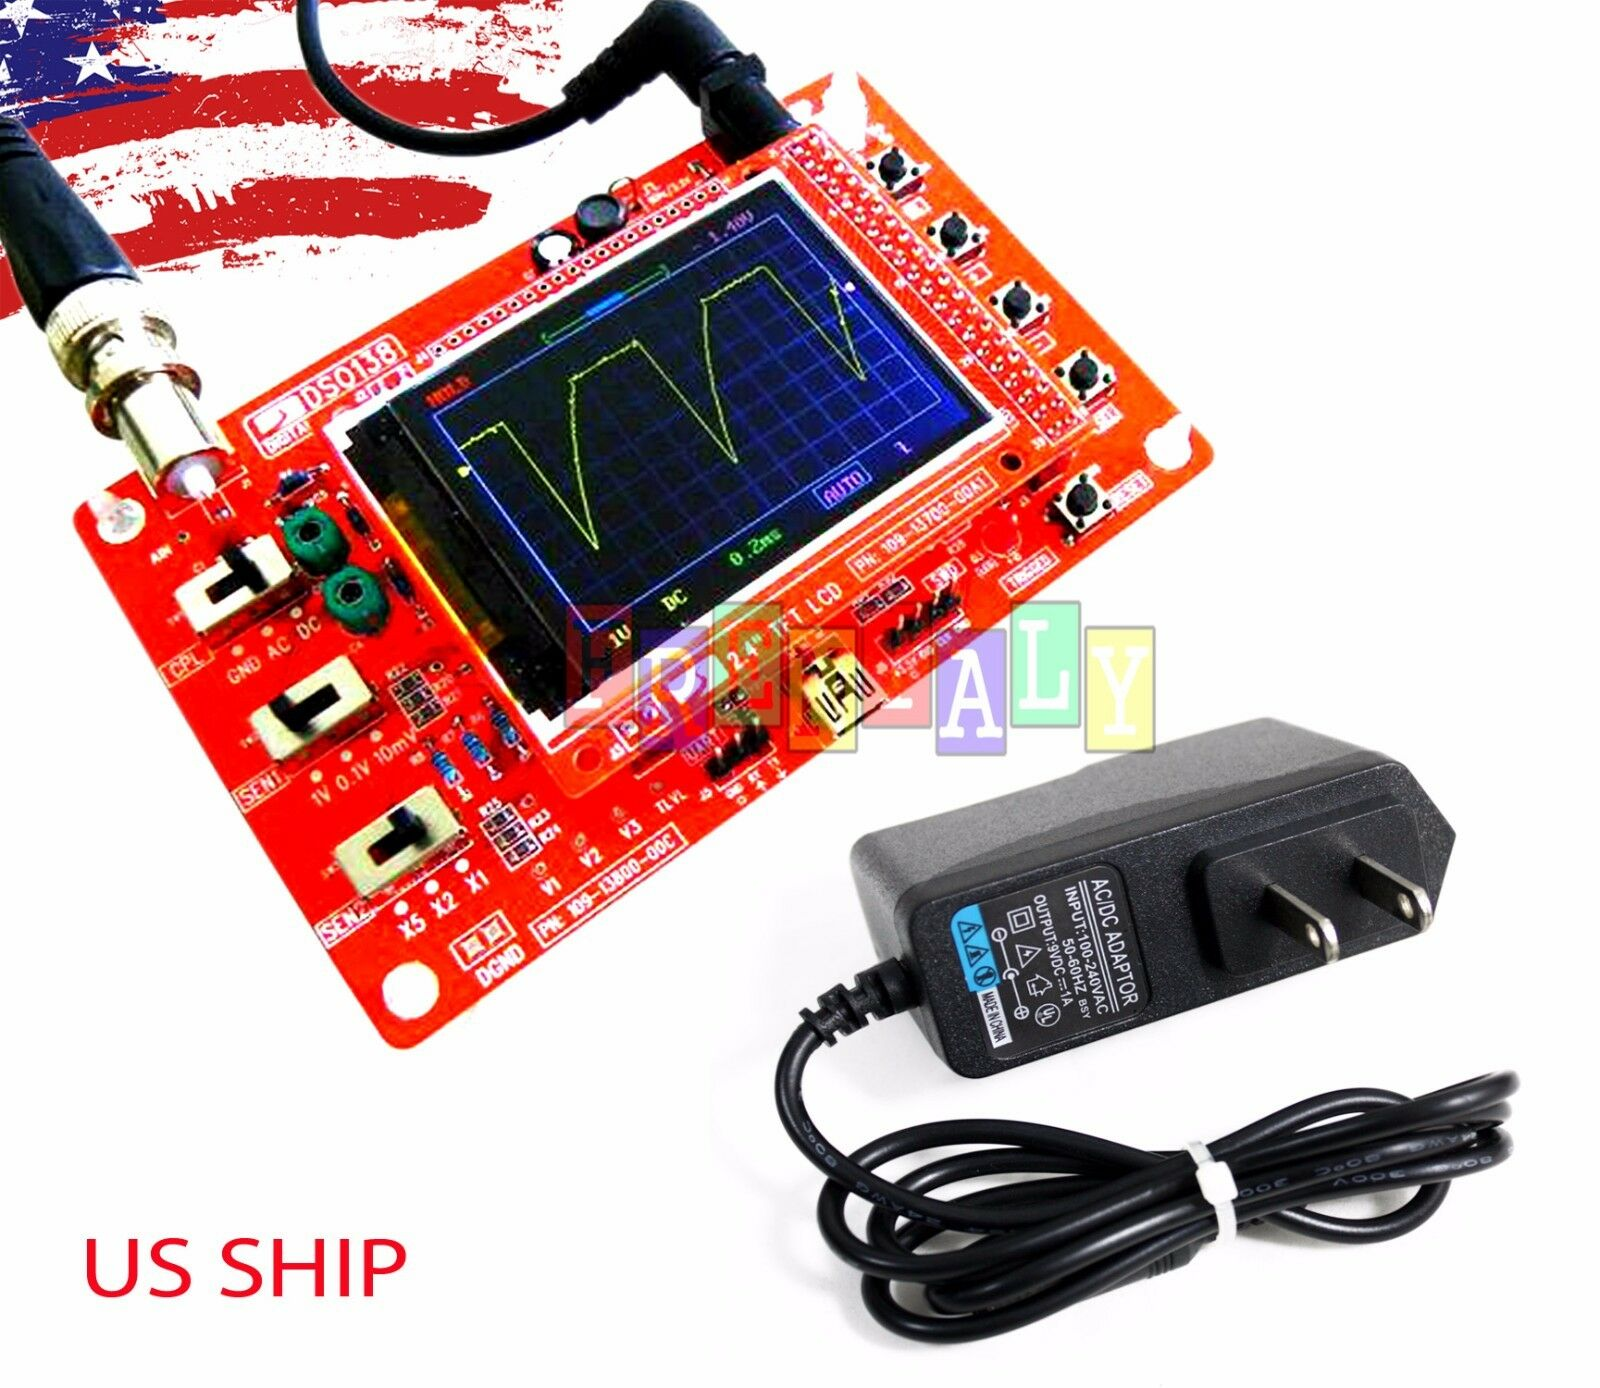 9v power adapter for dso138 24 tft digital oscilloscope kit diy 9v power adapter for dso138 24 tft digital oscilloscope kit diy parts 1msps 1 of 3free shipping see more solutioingenieria Image collections